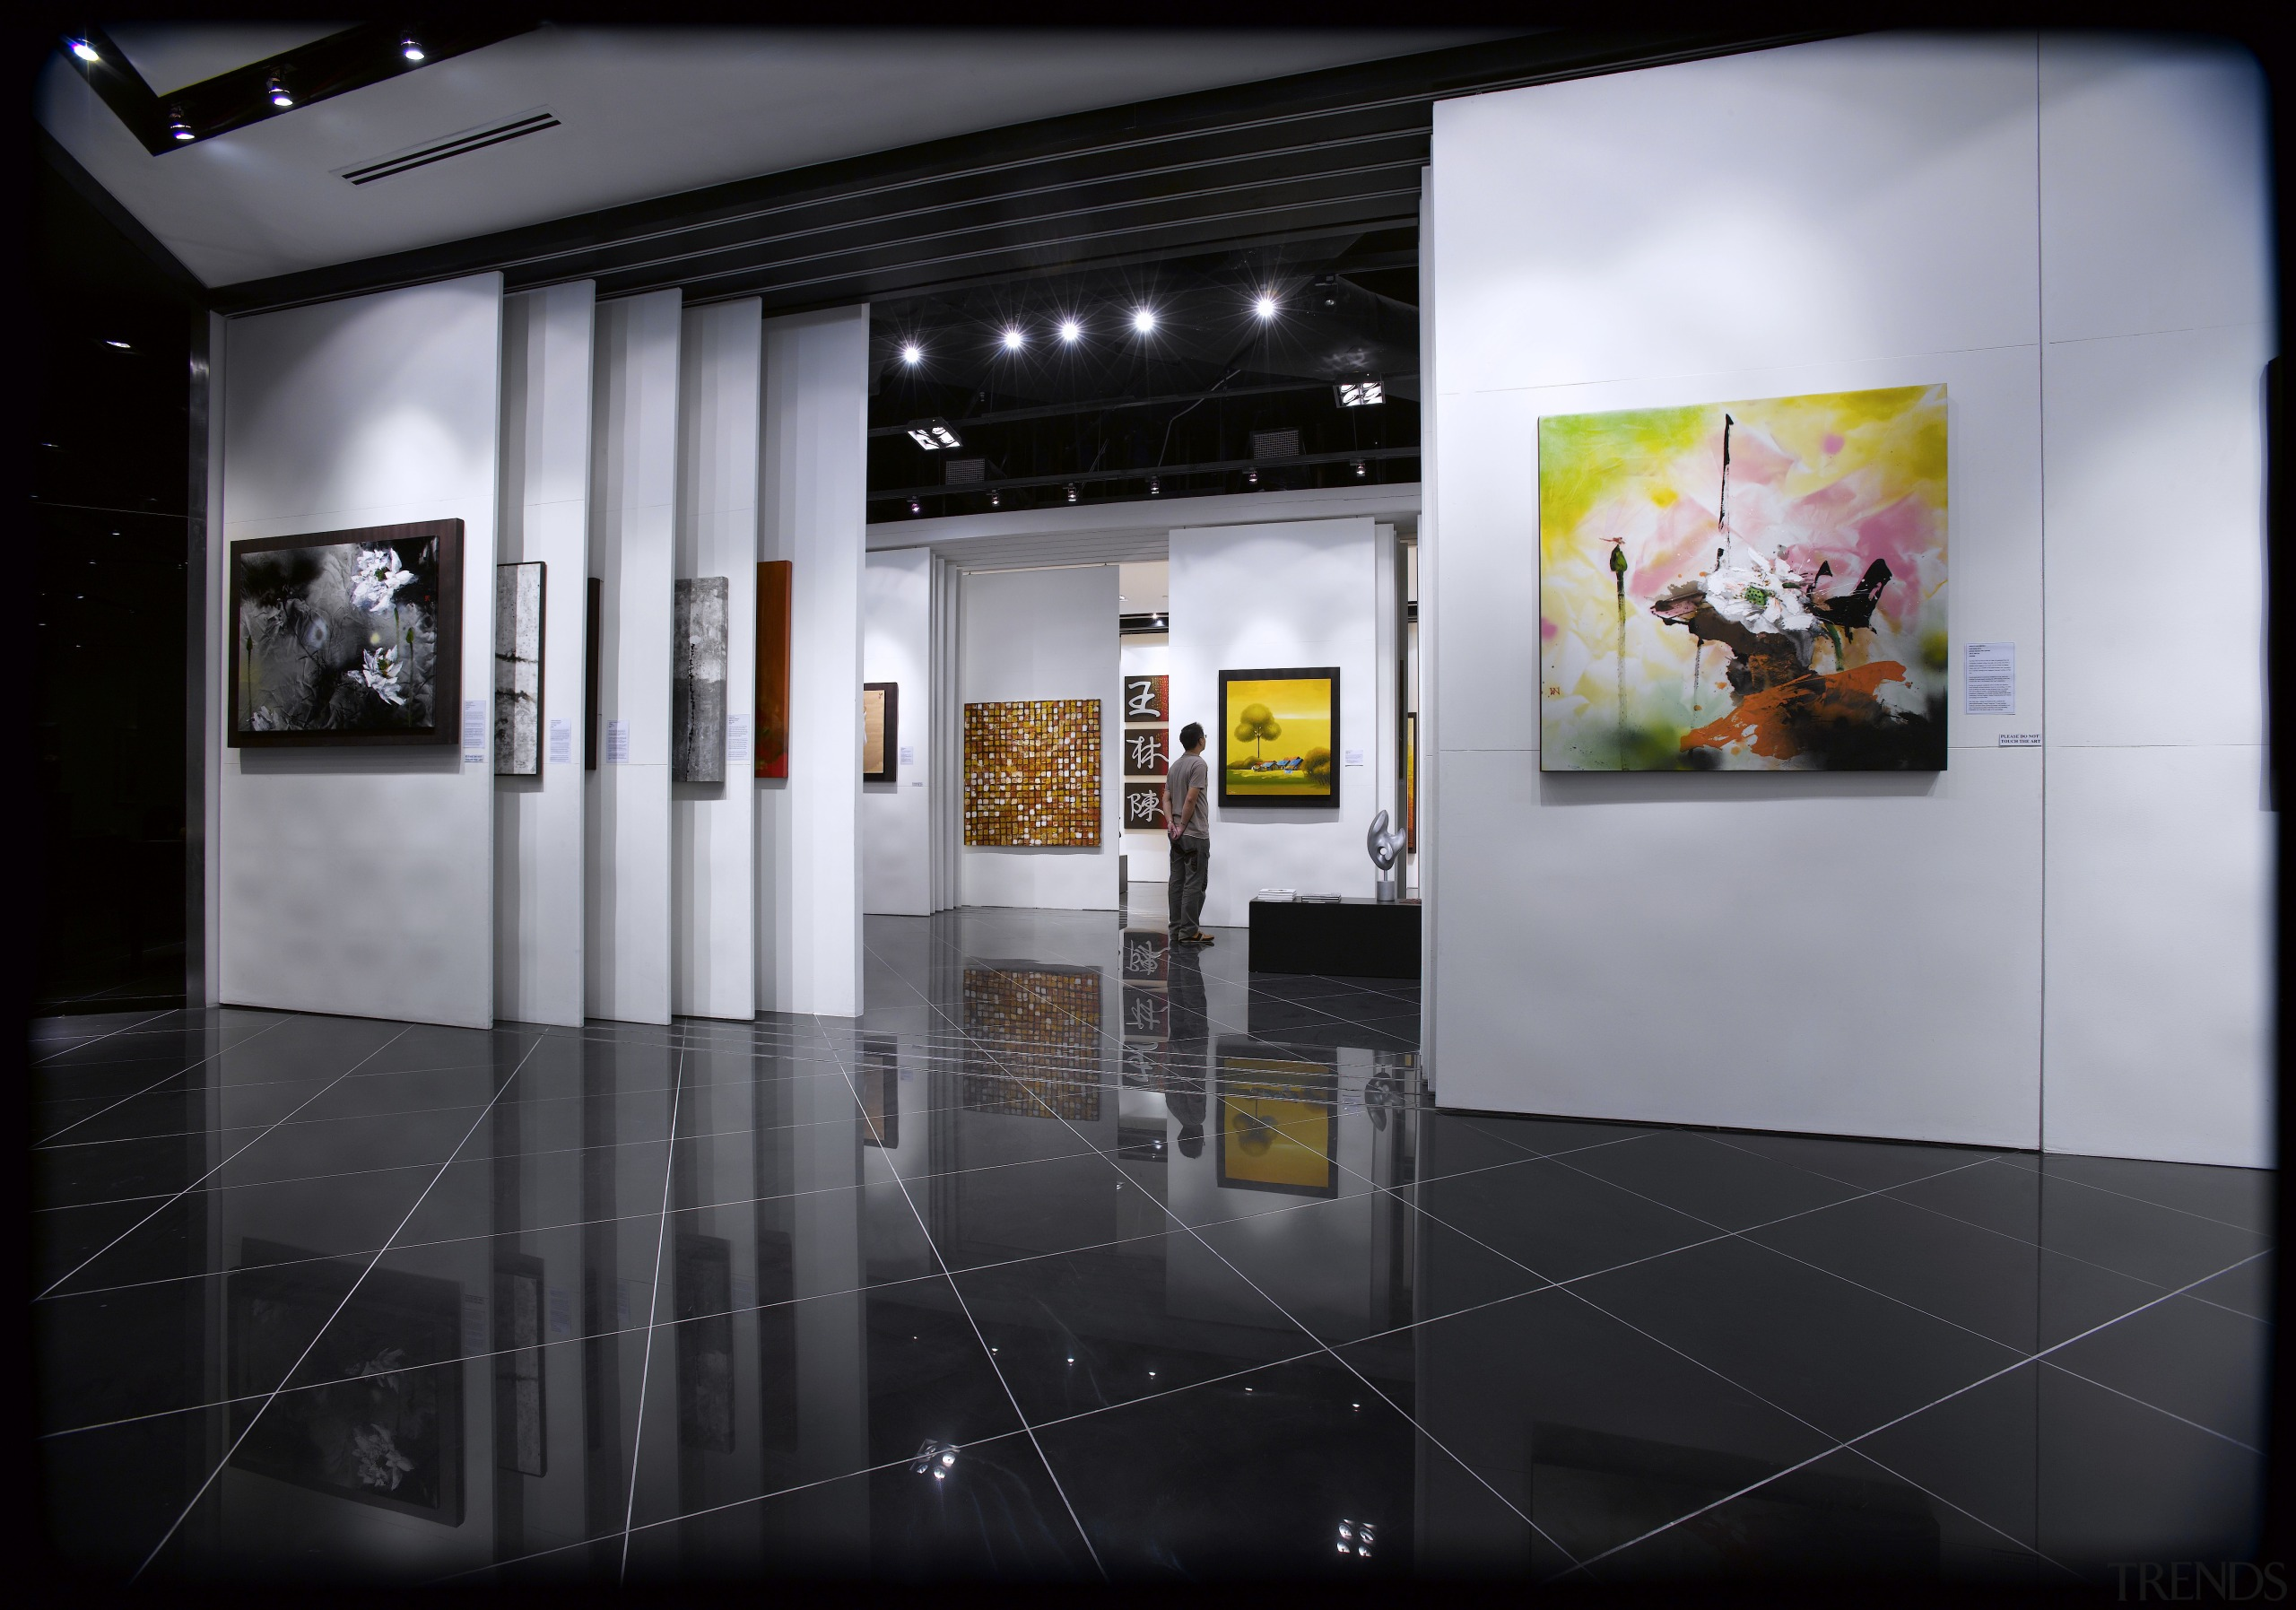 Interior view of the Art Gallery by Designworx, art exhibition, exhibition, interior design, product design, black, gray